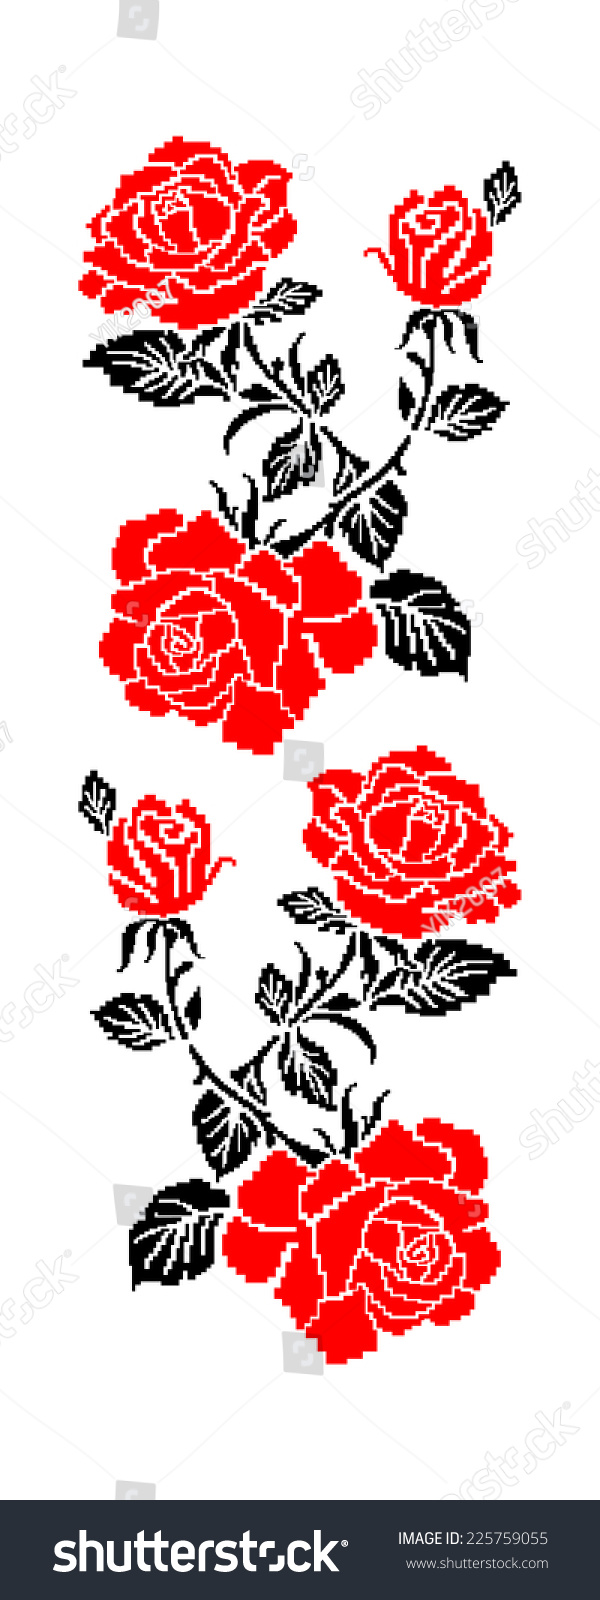 Color Image Flowers Roses Using Traditional Stock Illustration ...